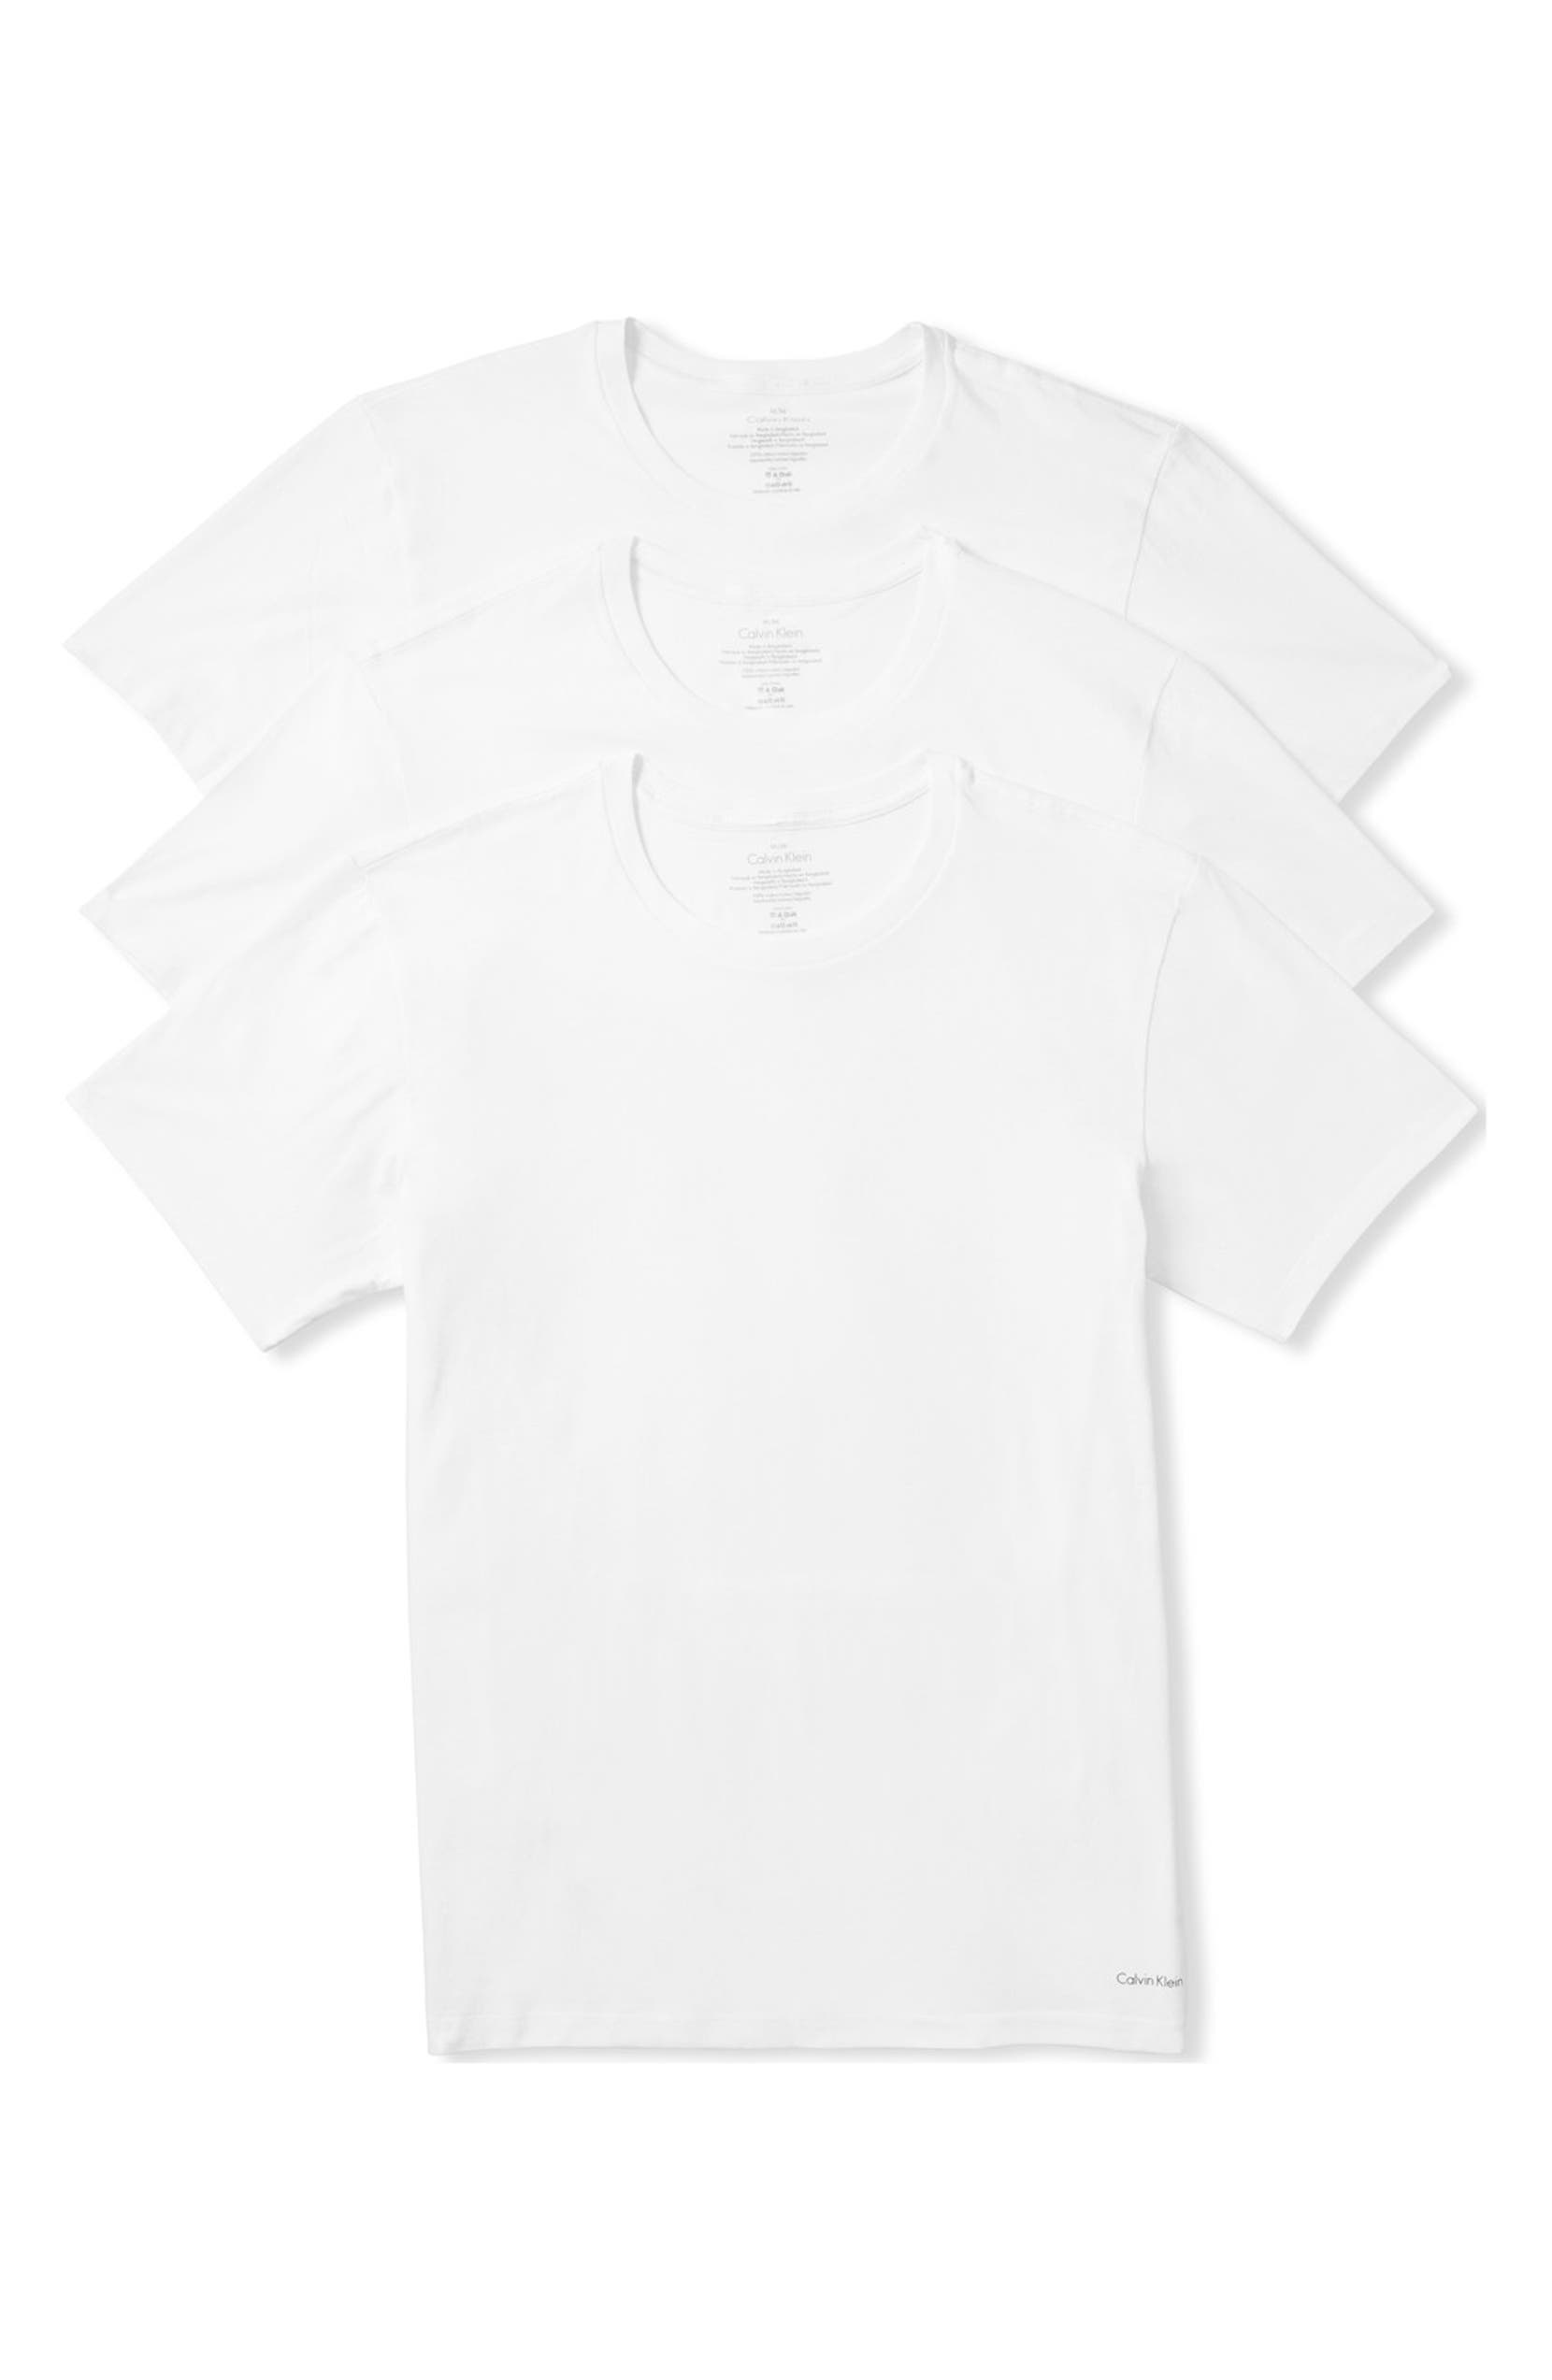 Calvin Klein 3-Pack Cotton T-Shirt  b828b2ec56d4